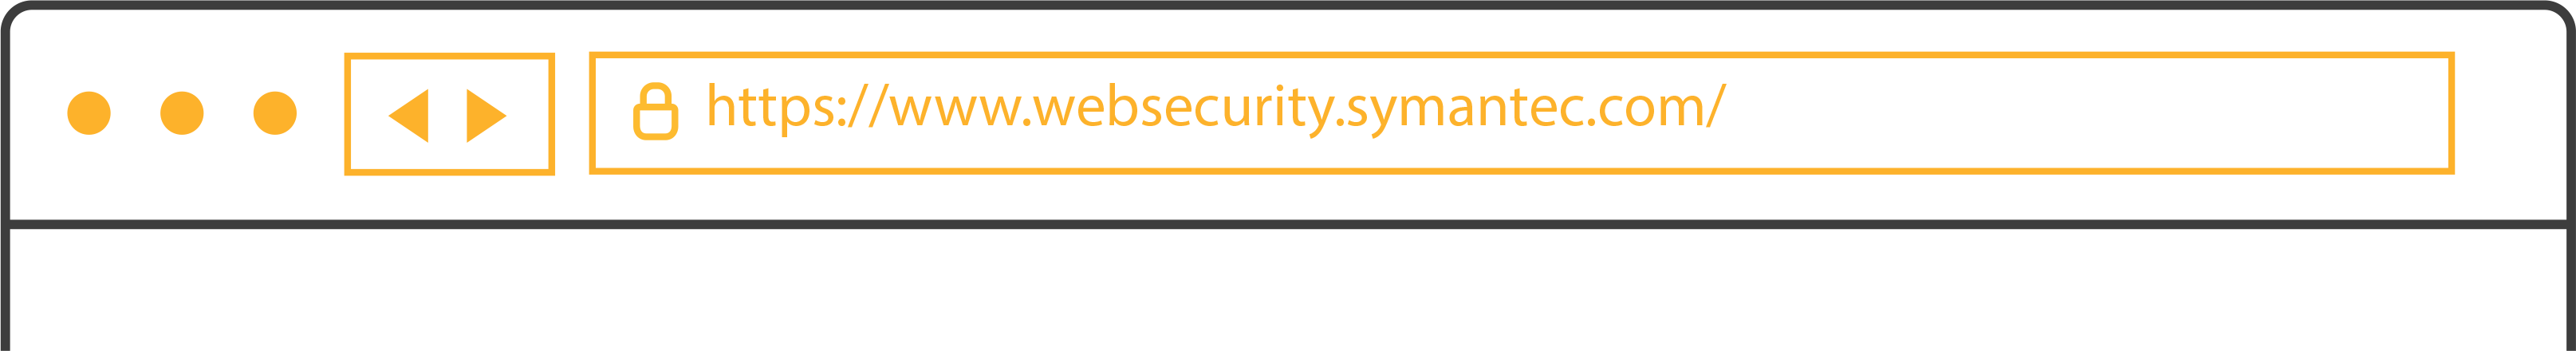 What is ssl tls and https symantec click here for full installation instructions xflitez Choice Image